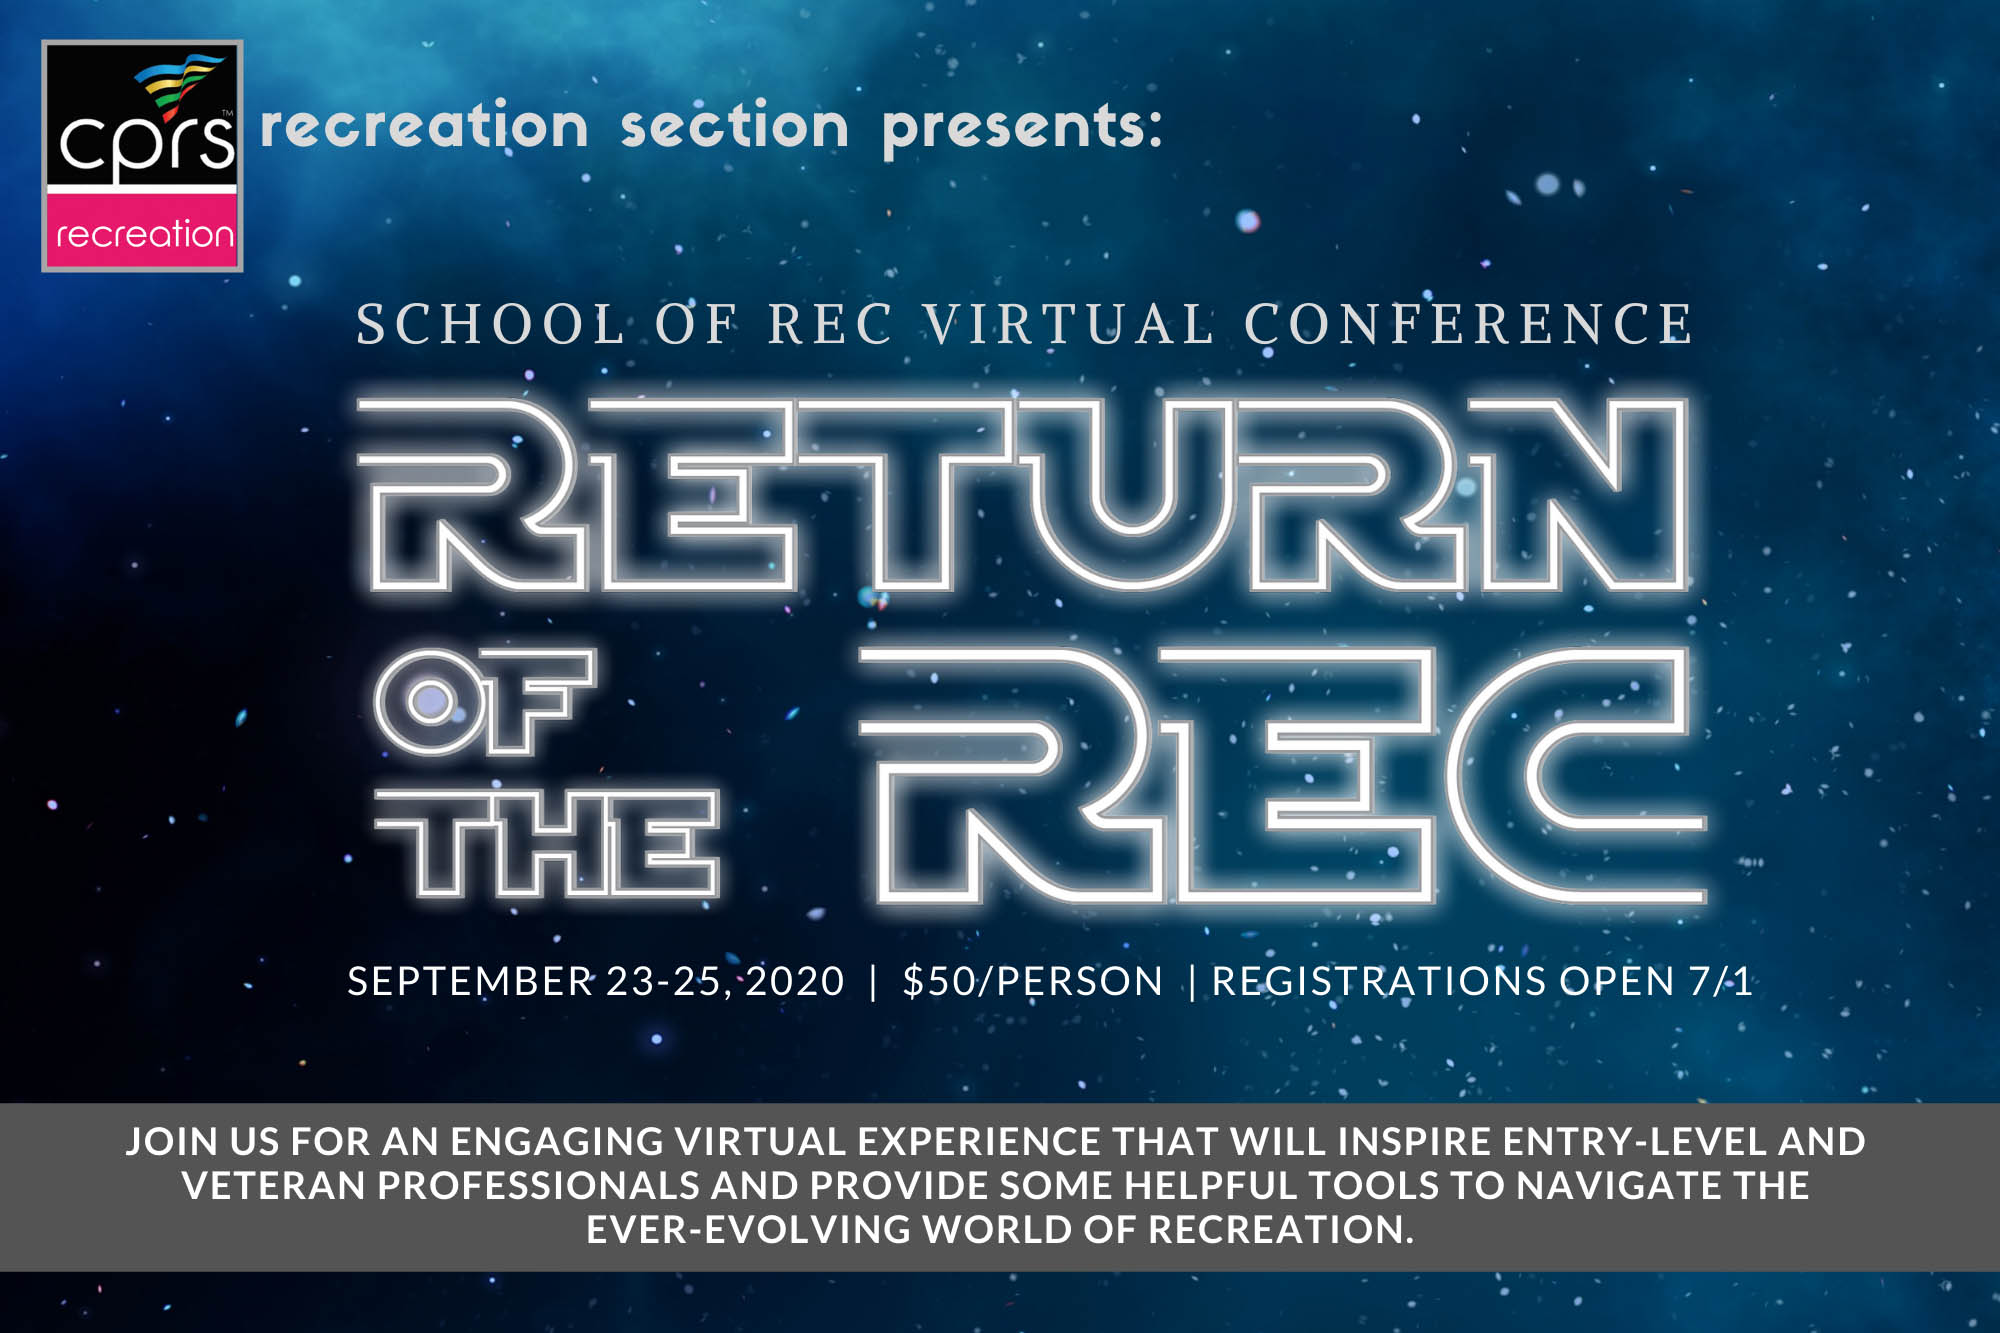 School of Rec Virtual Conference